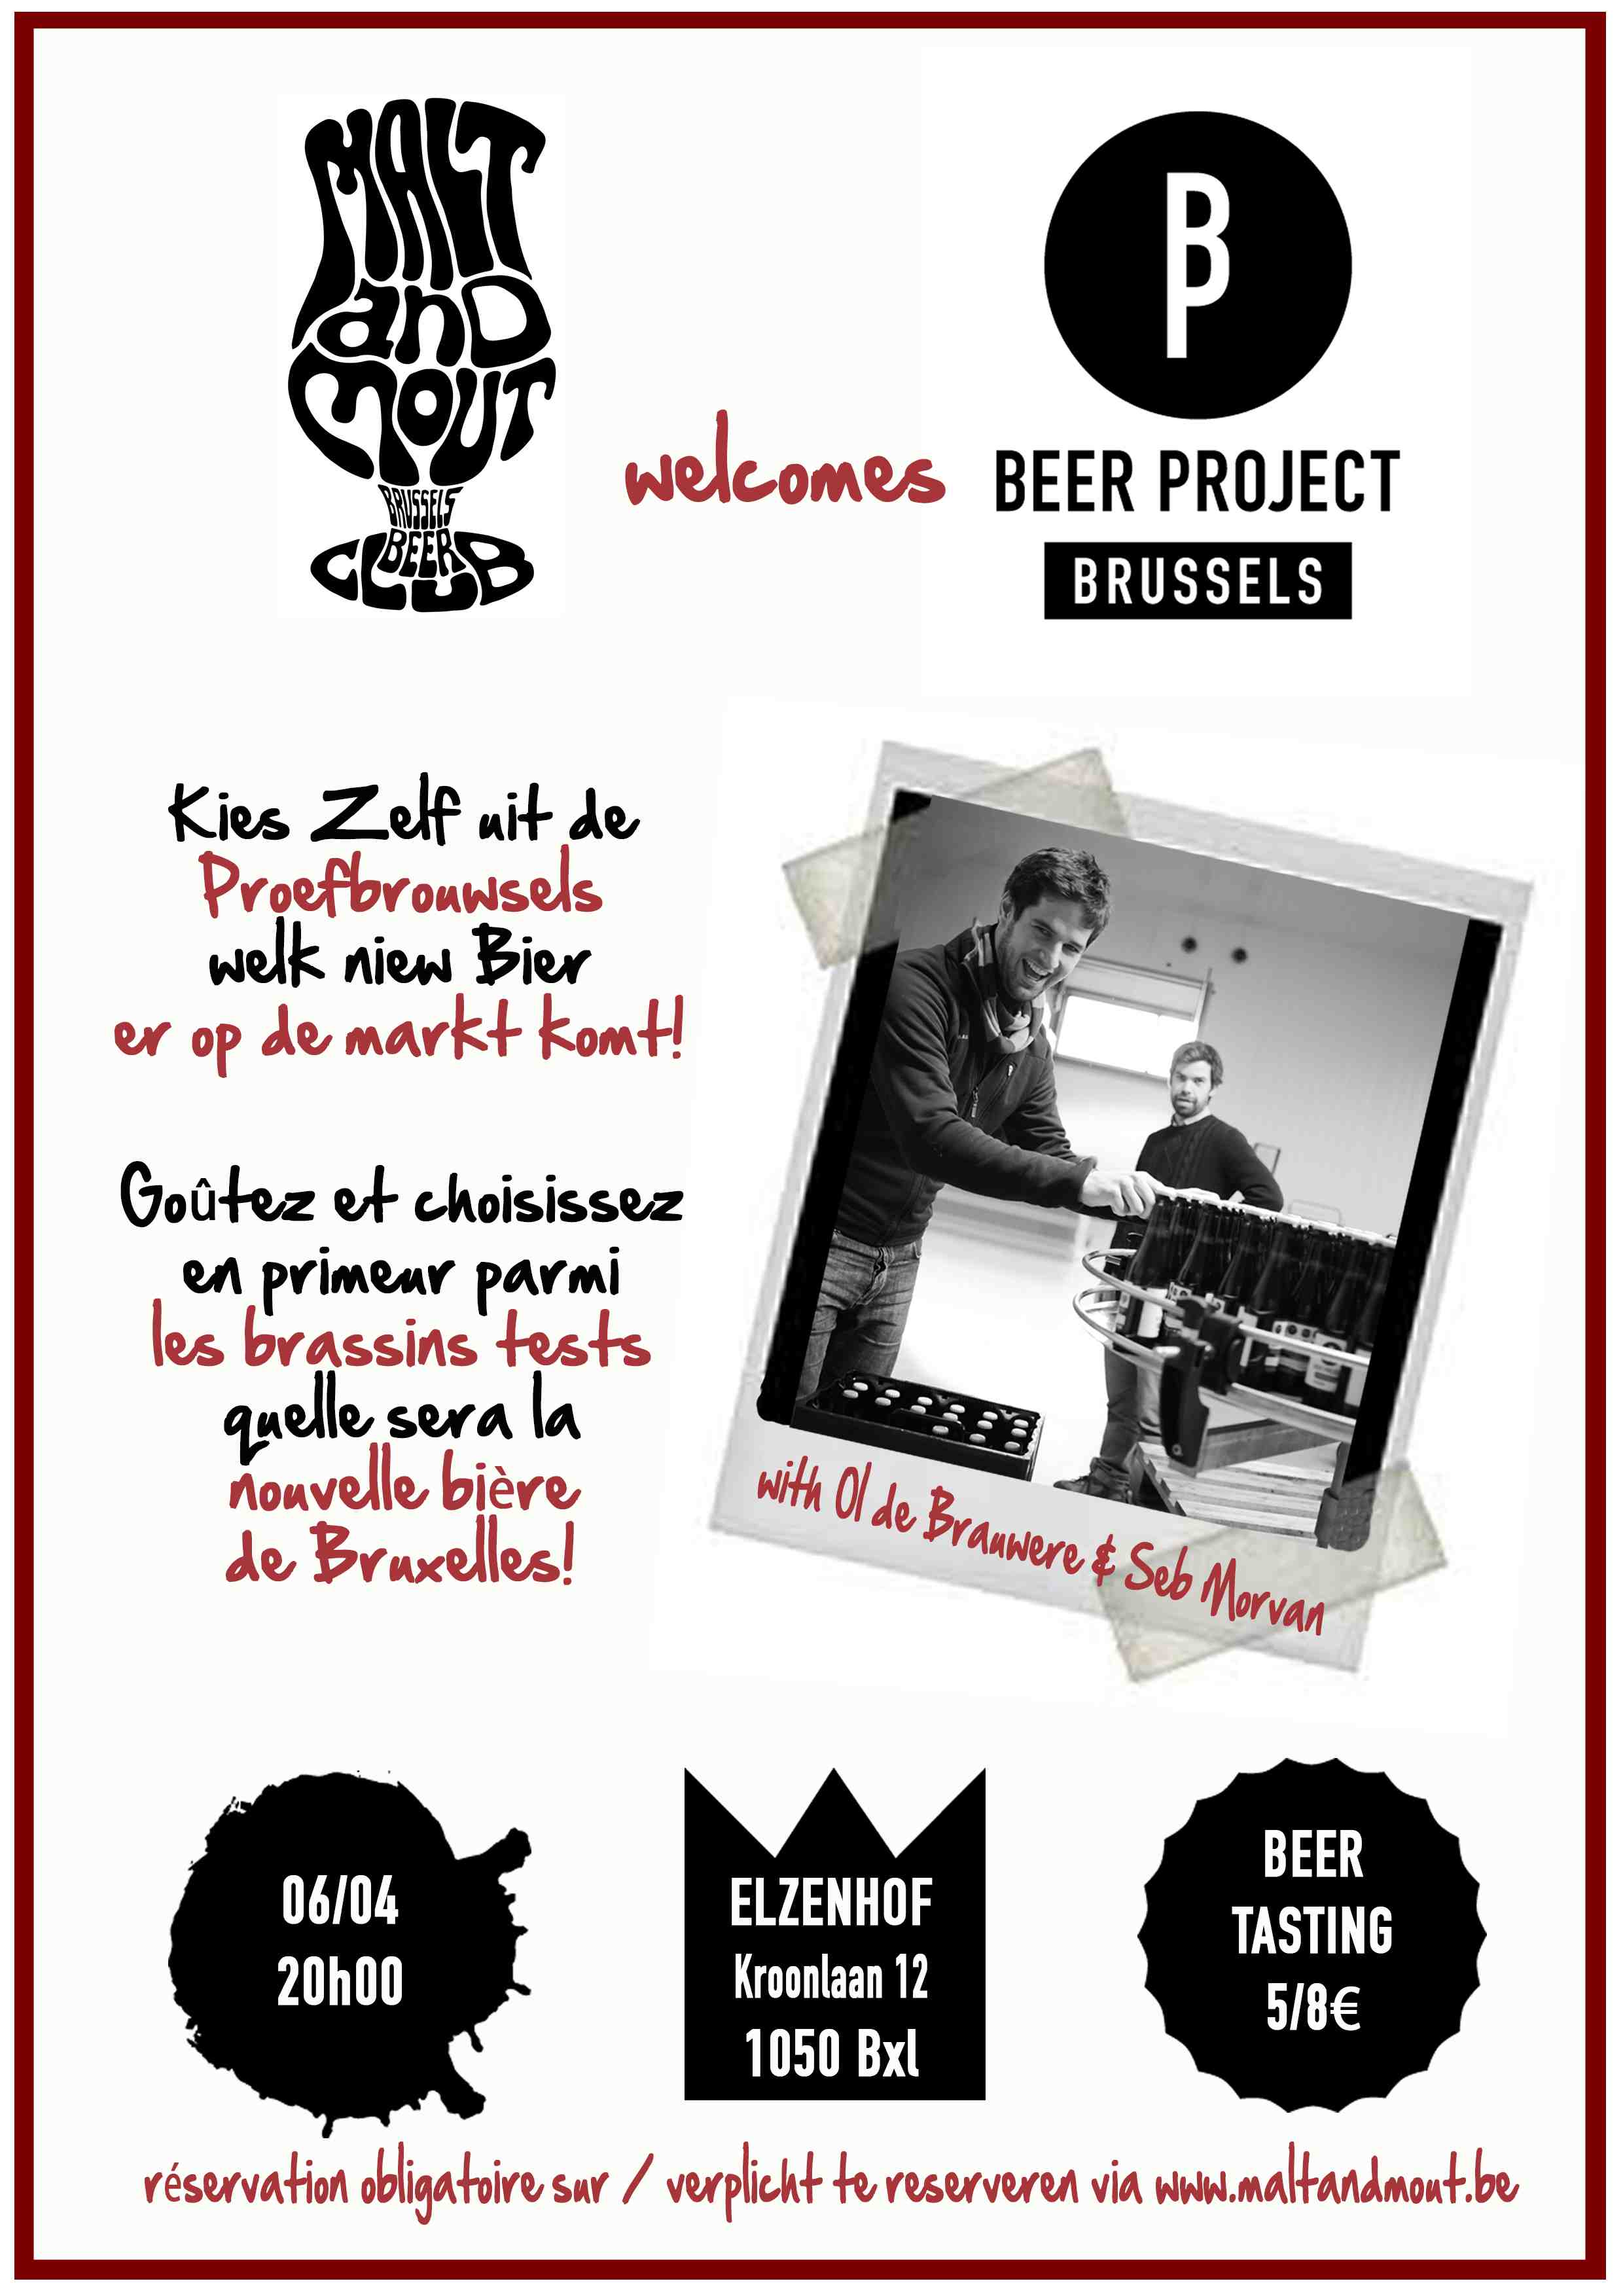 BeerProject Brussels